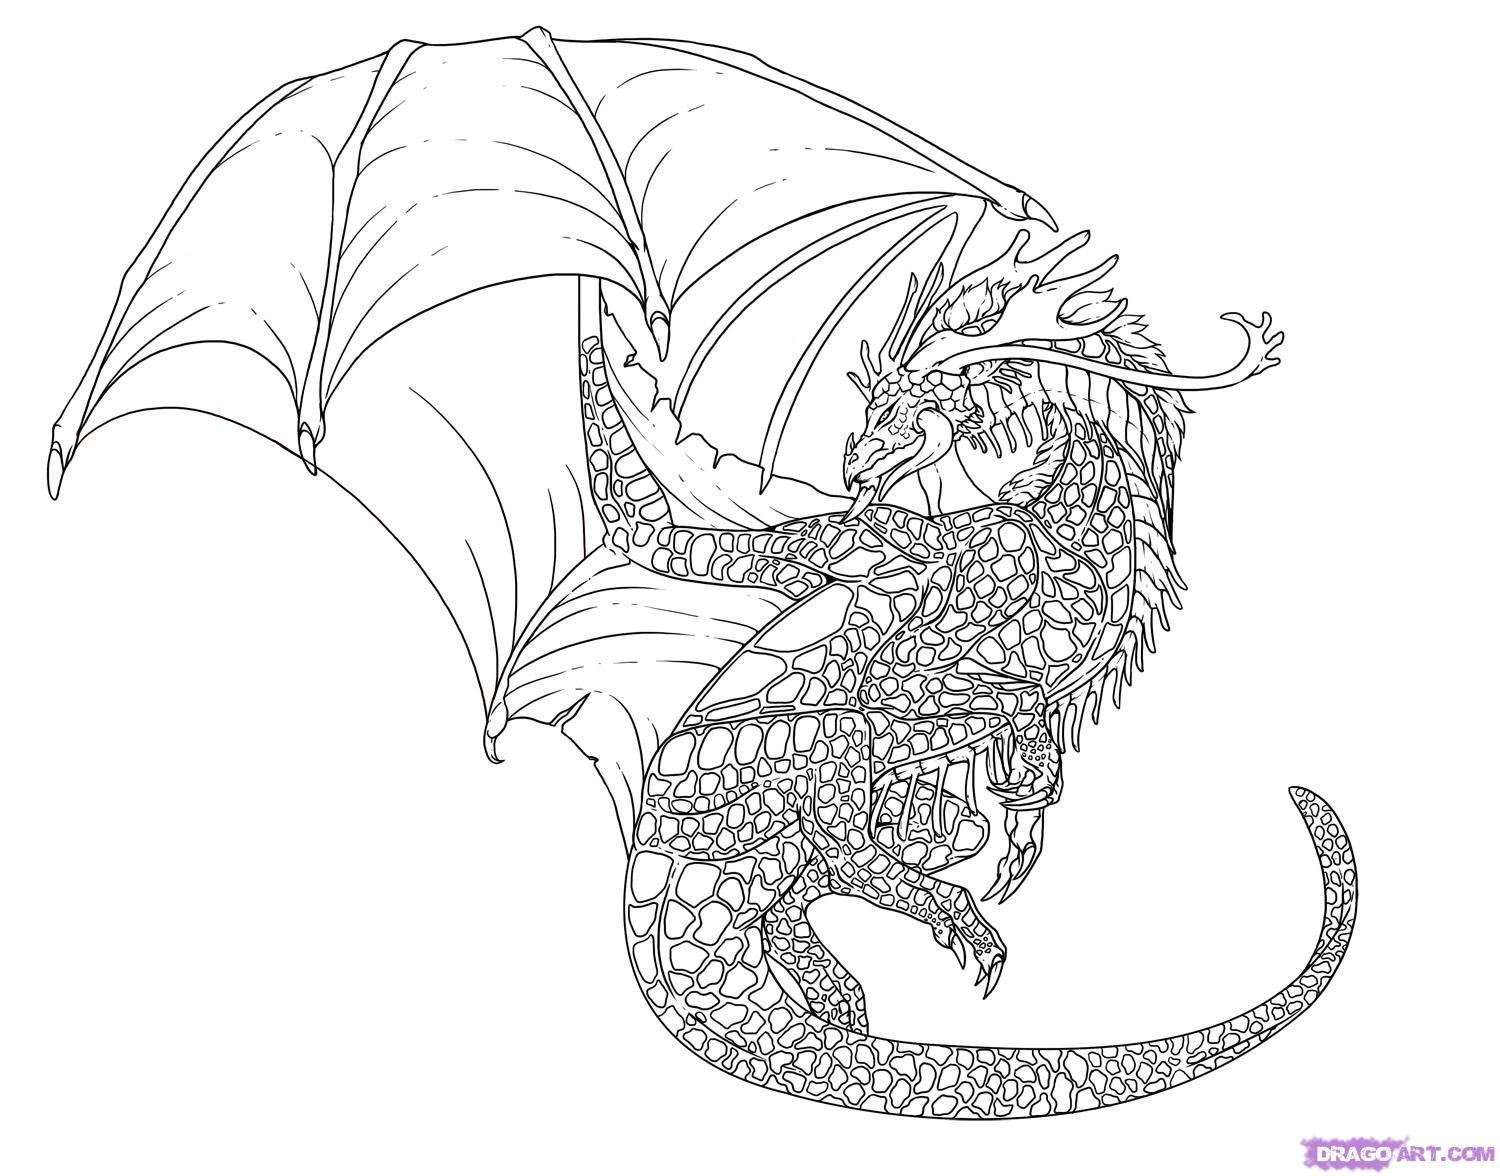 Cool Drawings - Bing images | Cool dragon drawings, Dragon ...